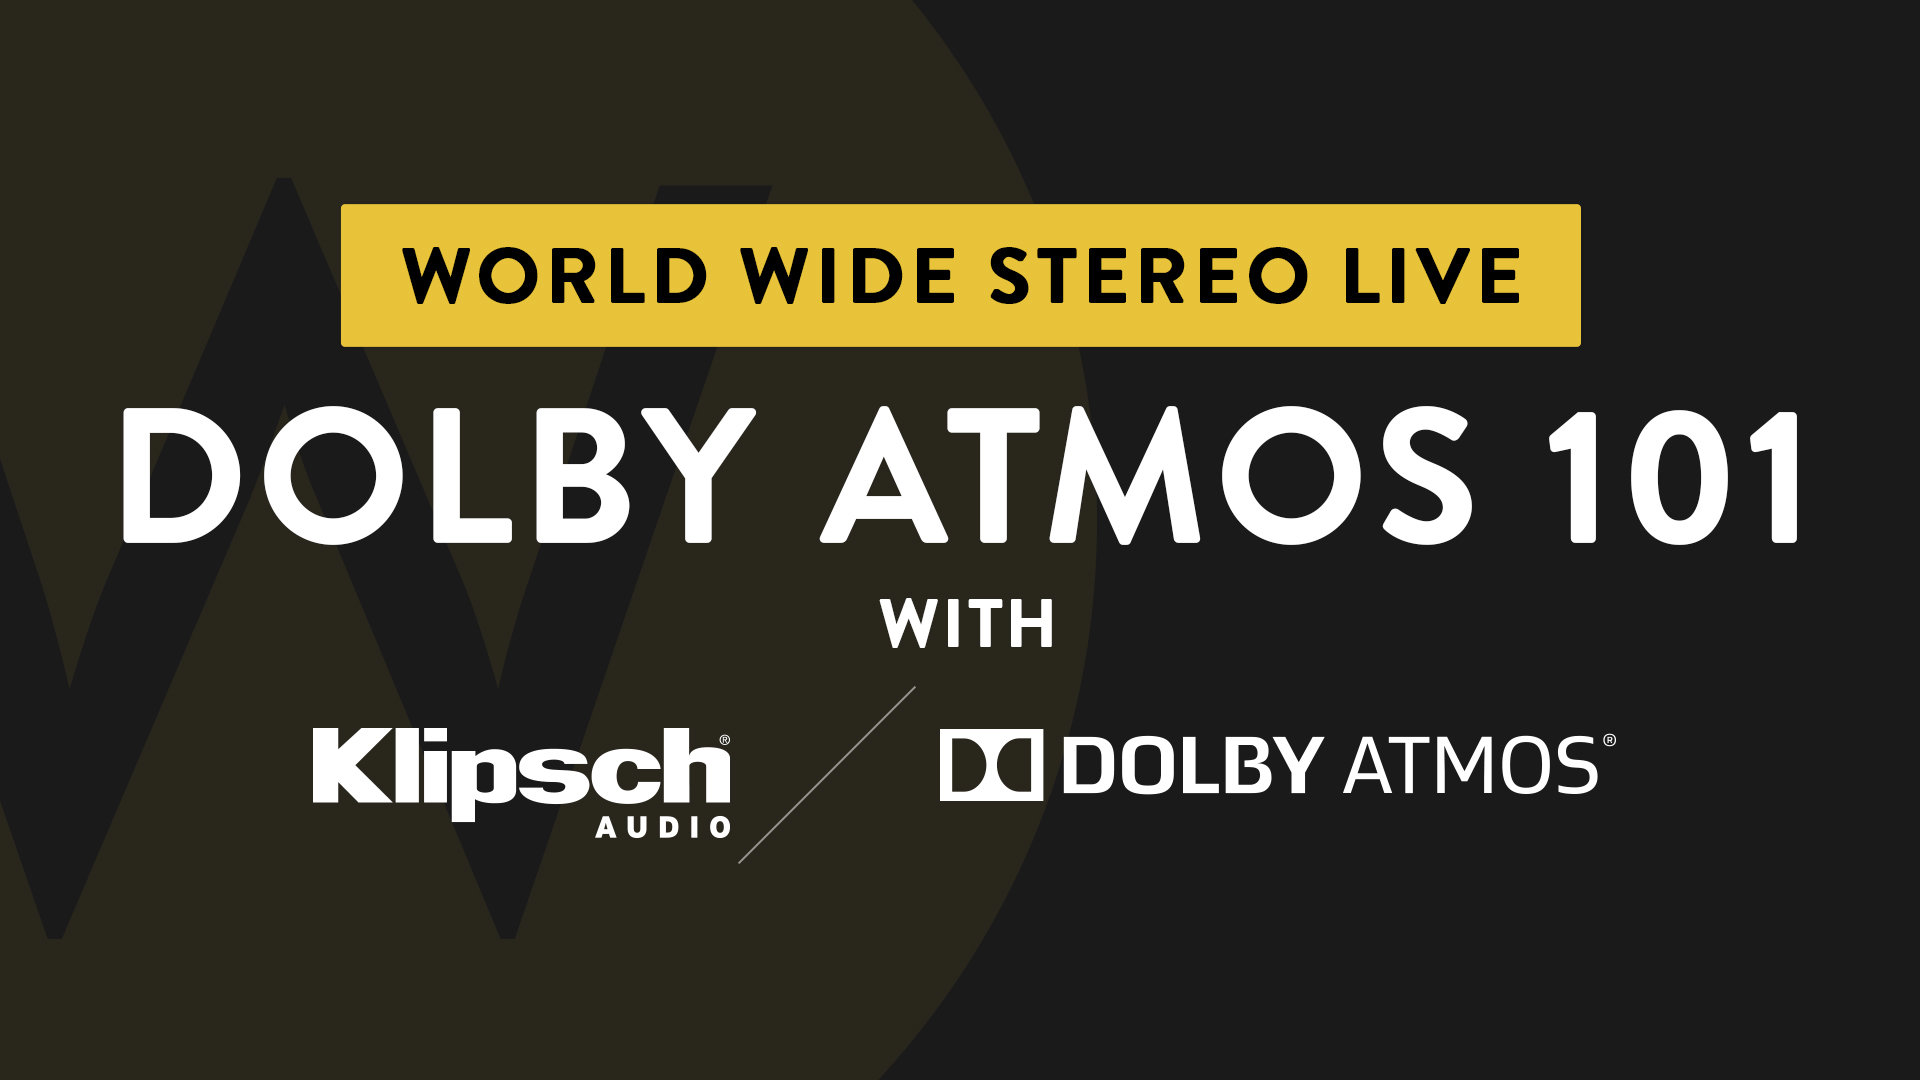 Ep. 15 Dolby Atmos 101